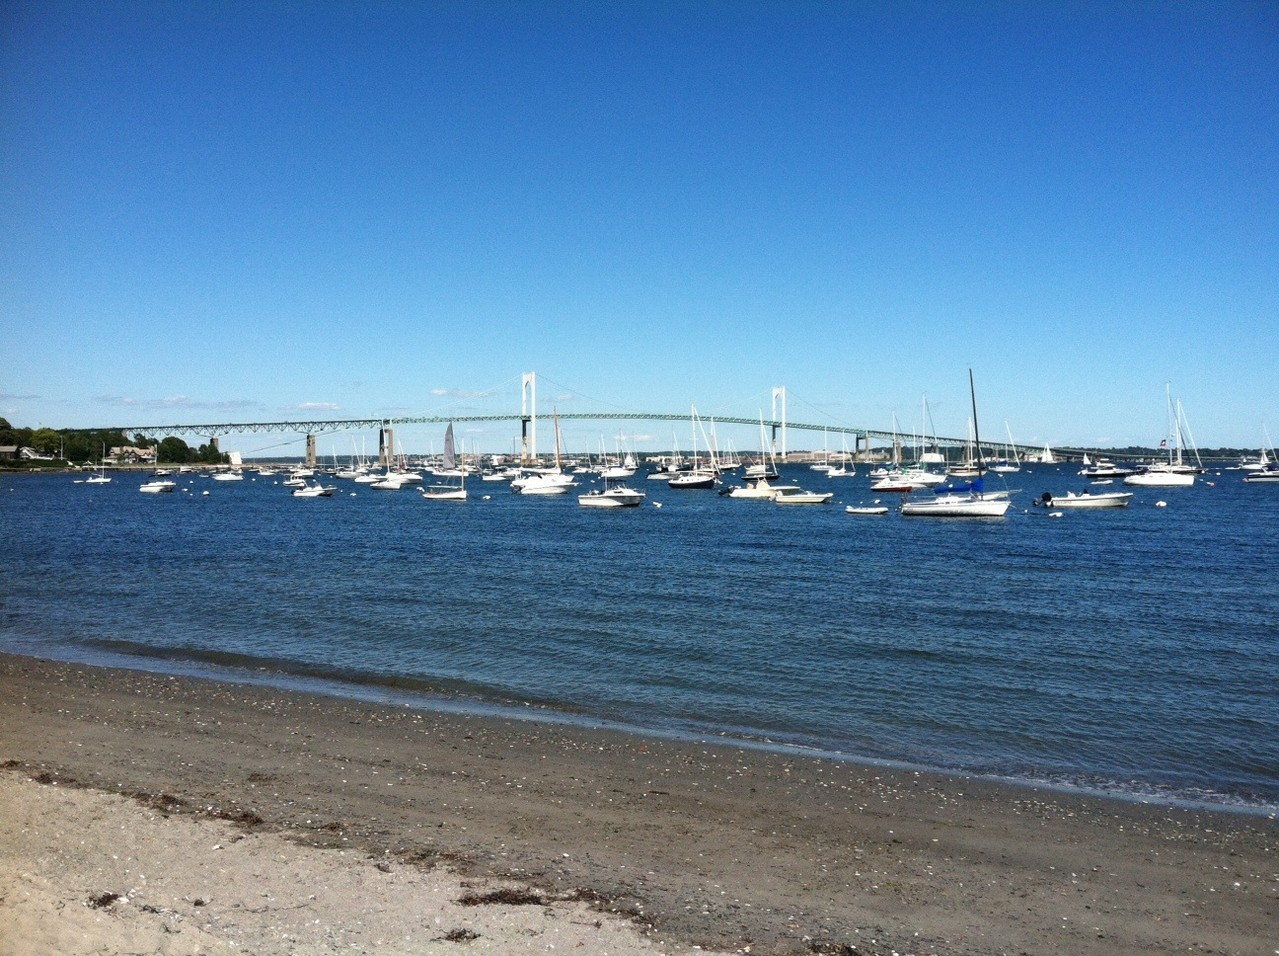 Newport Bridge, Aug. 2013, from Jamestown